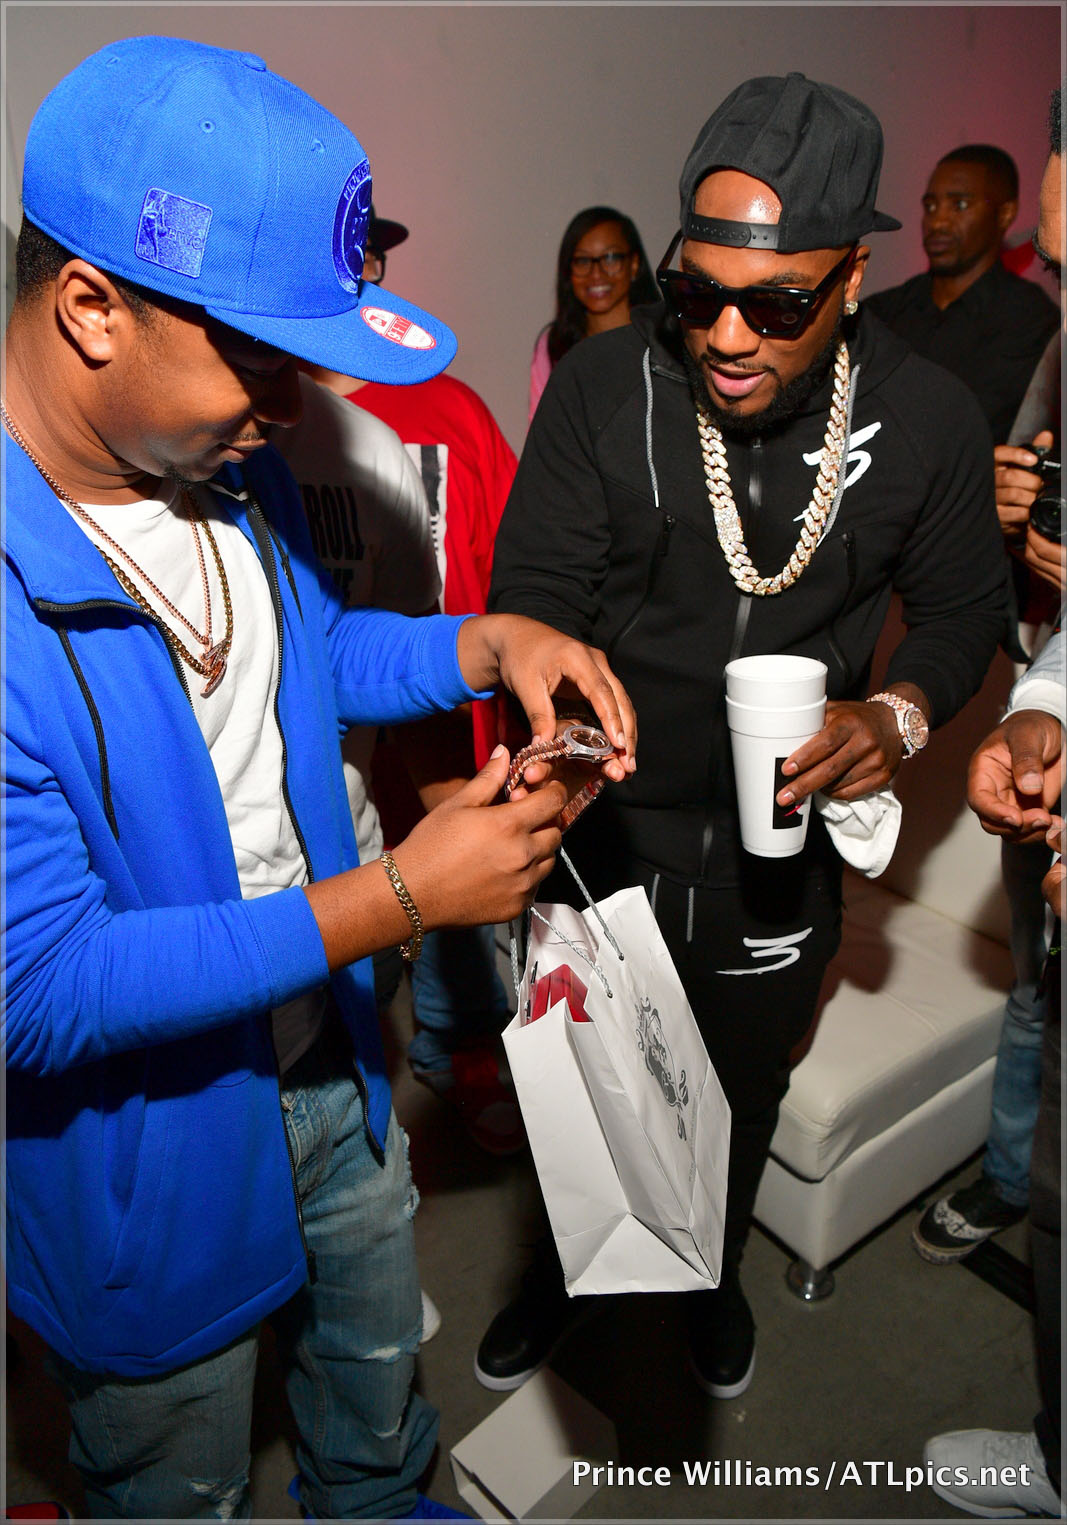 Jeezy gifted his artist with a new Rolex